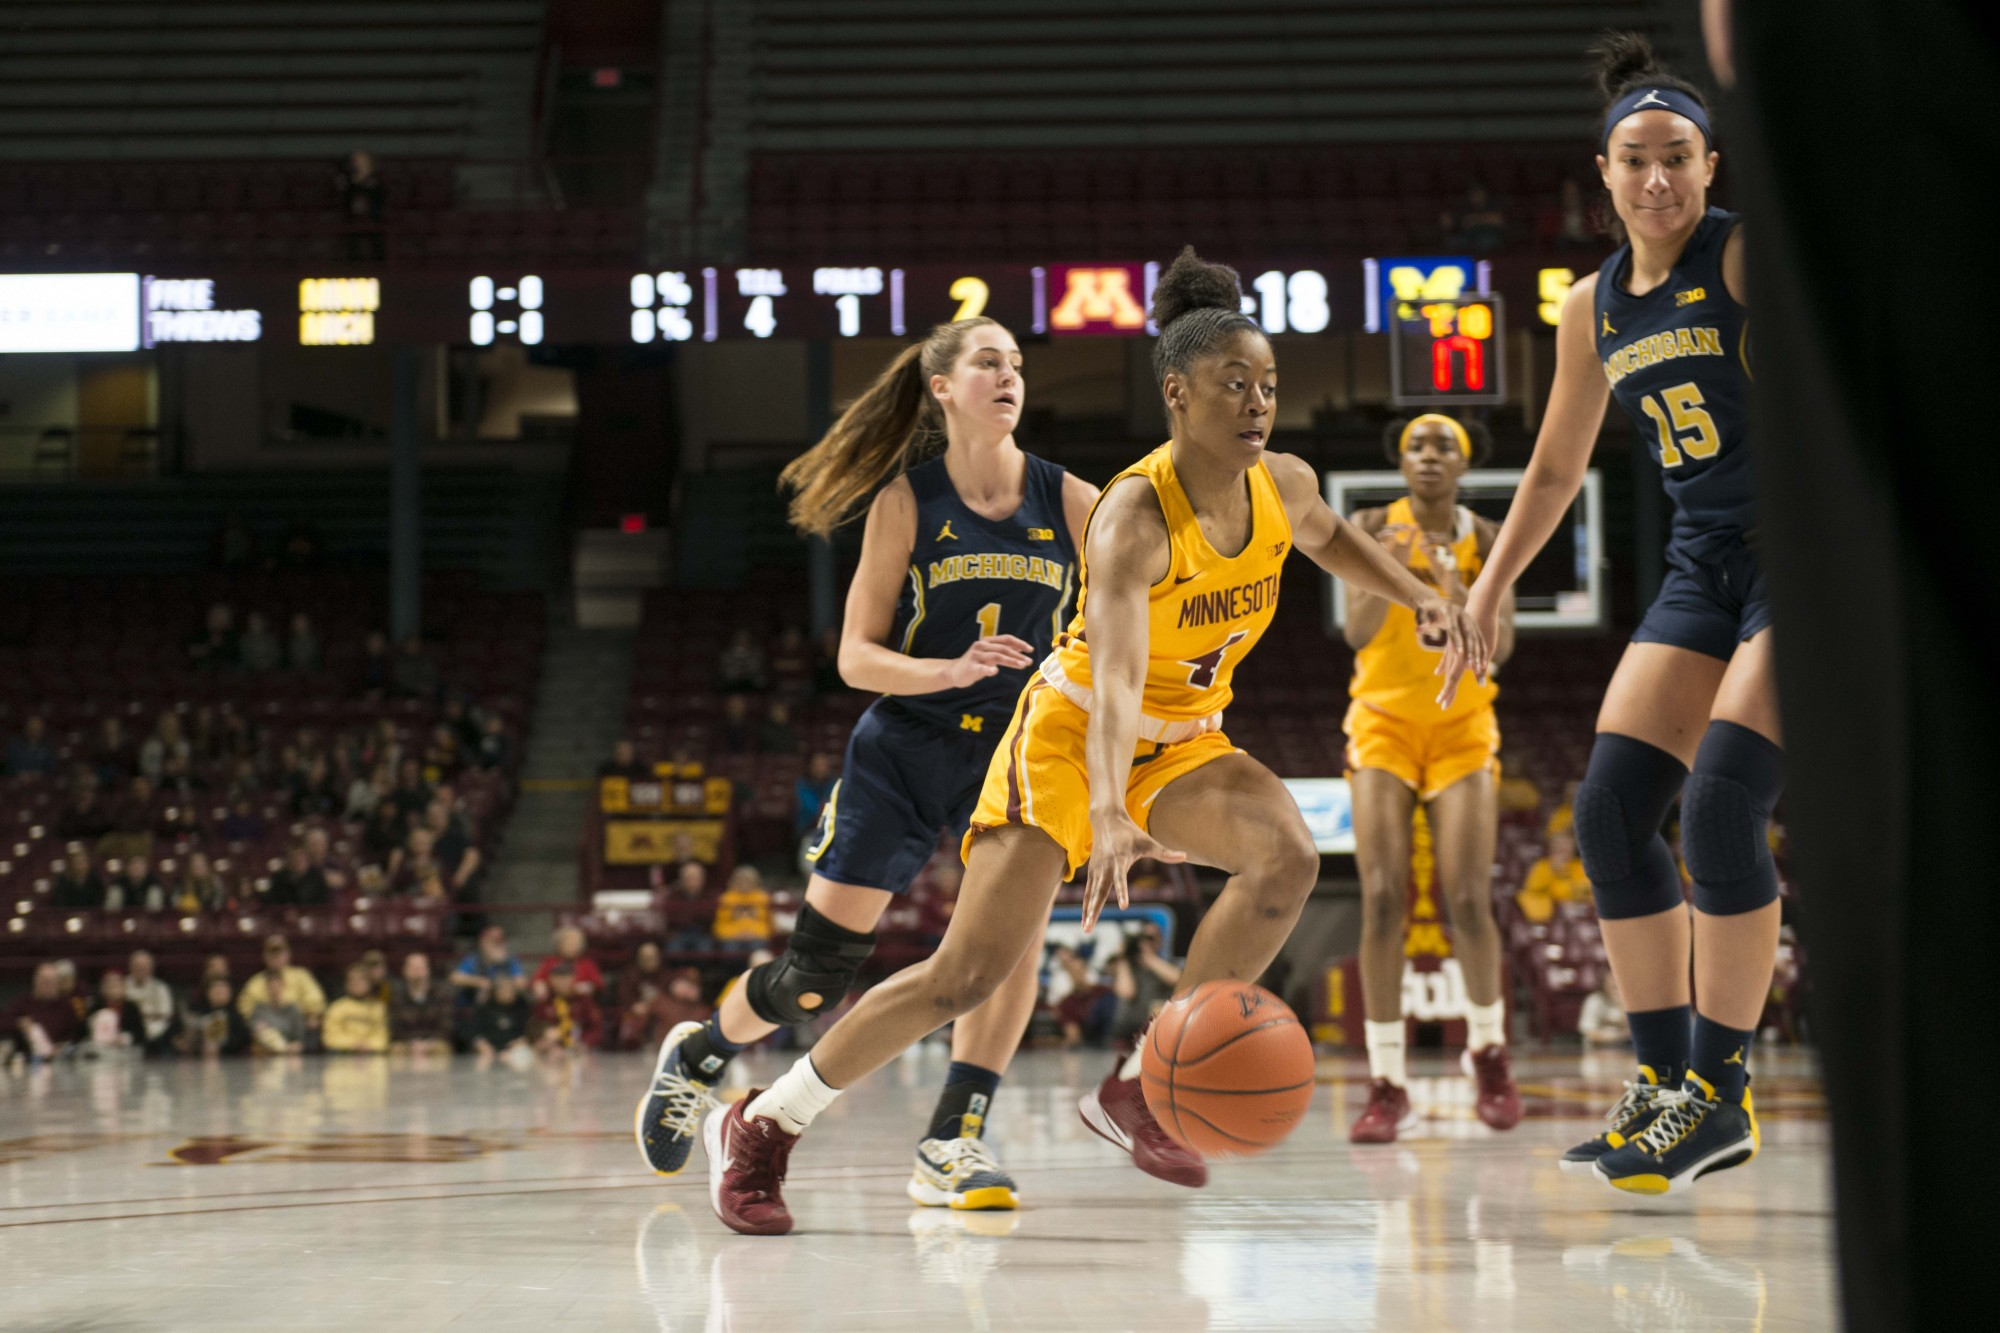 Gopher forward Jasmine Powell approaches defenders in Williams Arena on Sunday, Feb. 10. The Gophers suffered a defeat against Michigan 52-77.